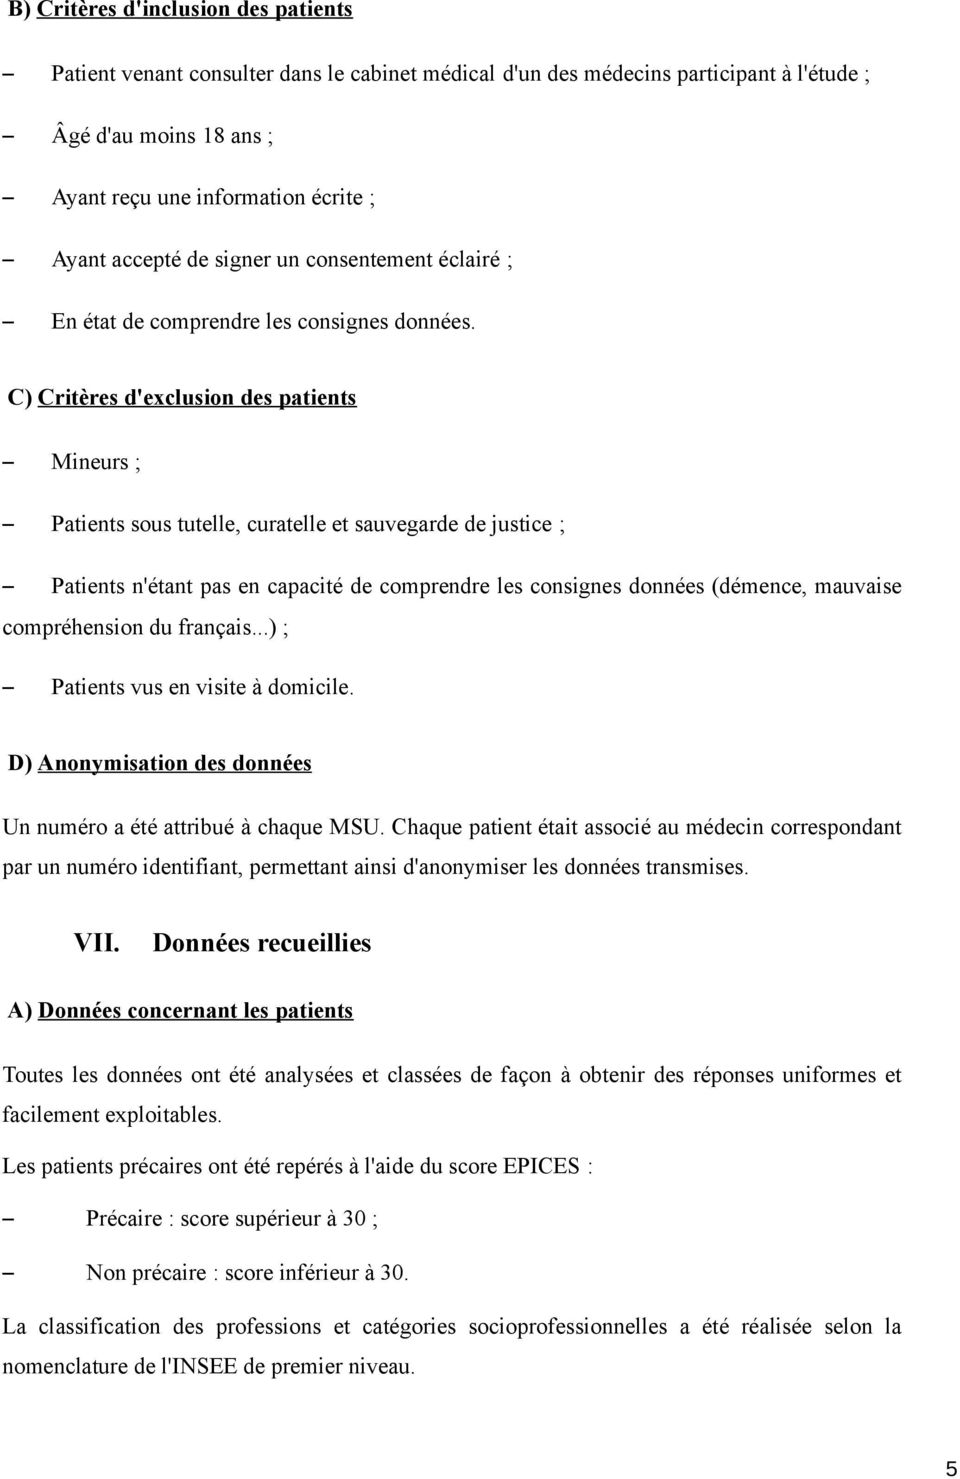 C) Critères d'exclusion des patients Mineurs ; Patients sous tutelle, curatelle et sauvegarde de justice ; Patients n'étant pas en capacité de comprendre les consignes données (démence, mauvaise